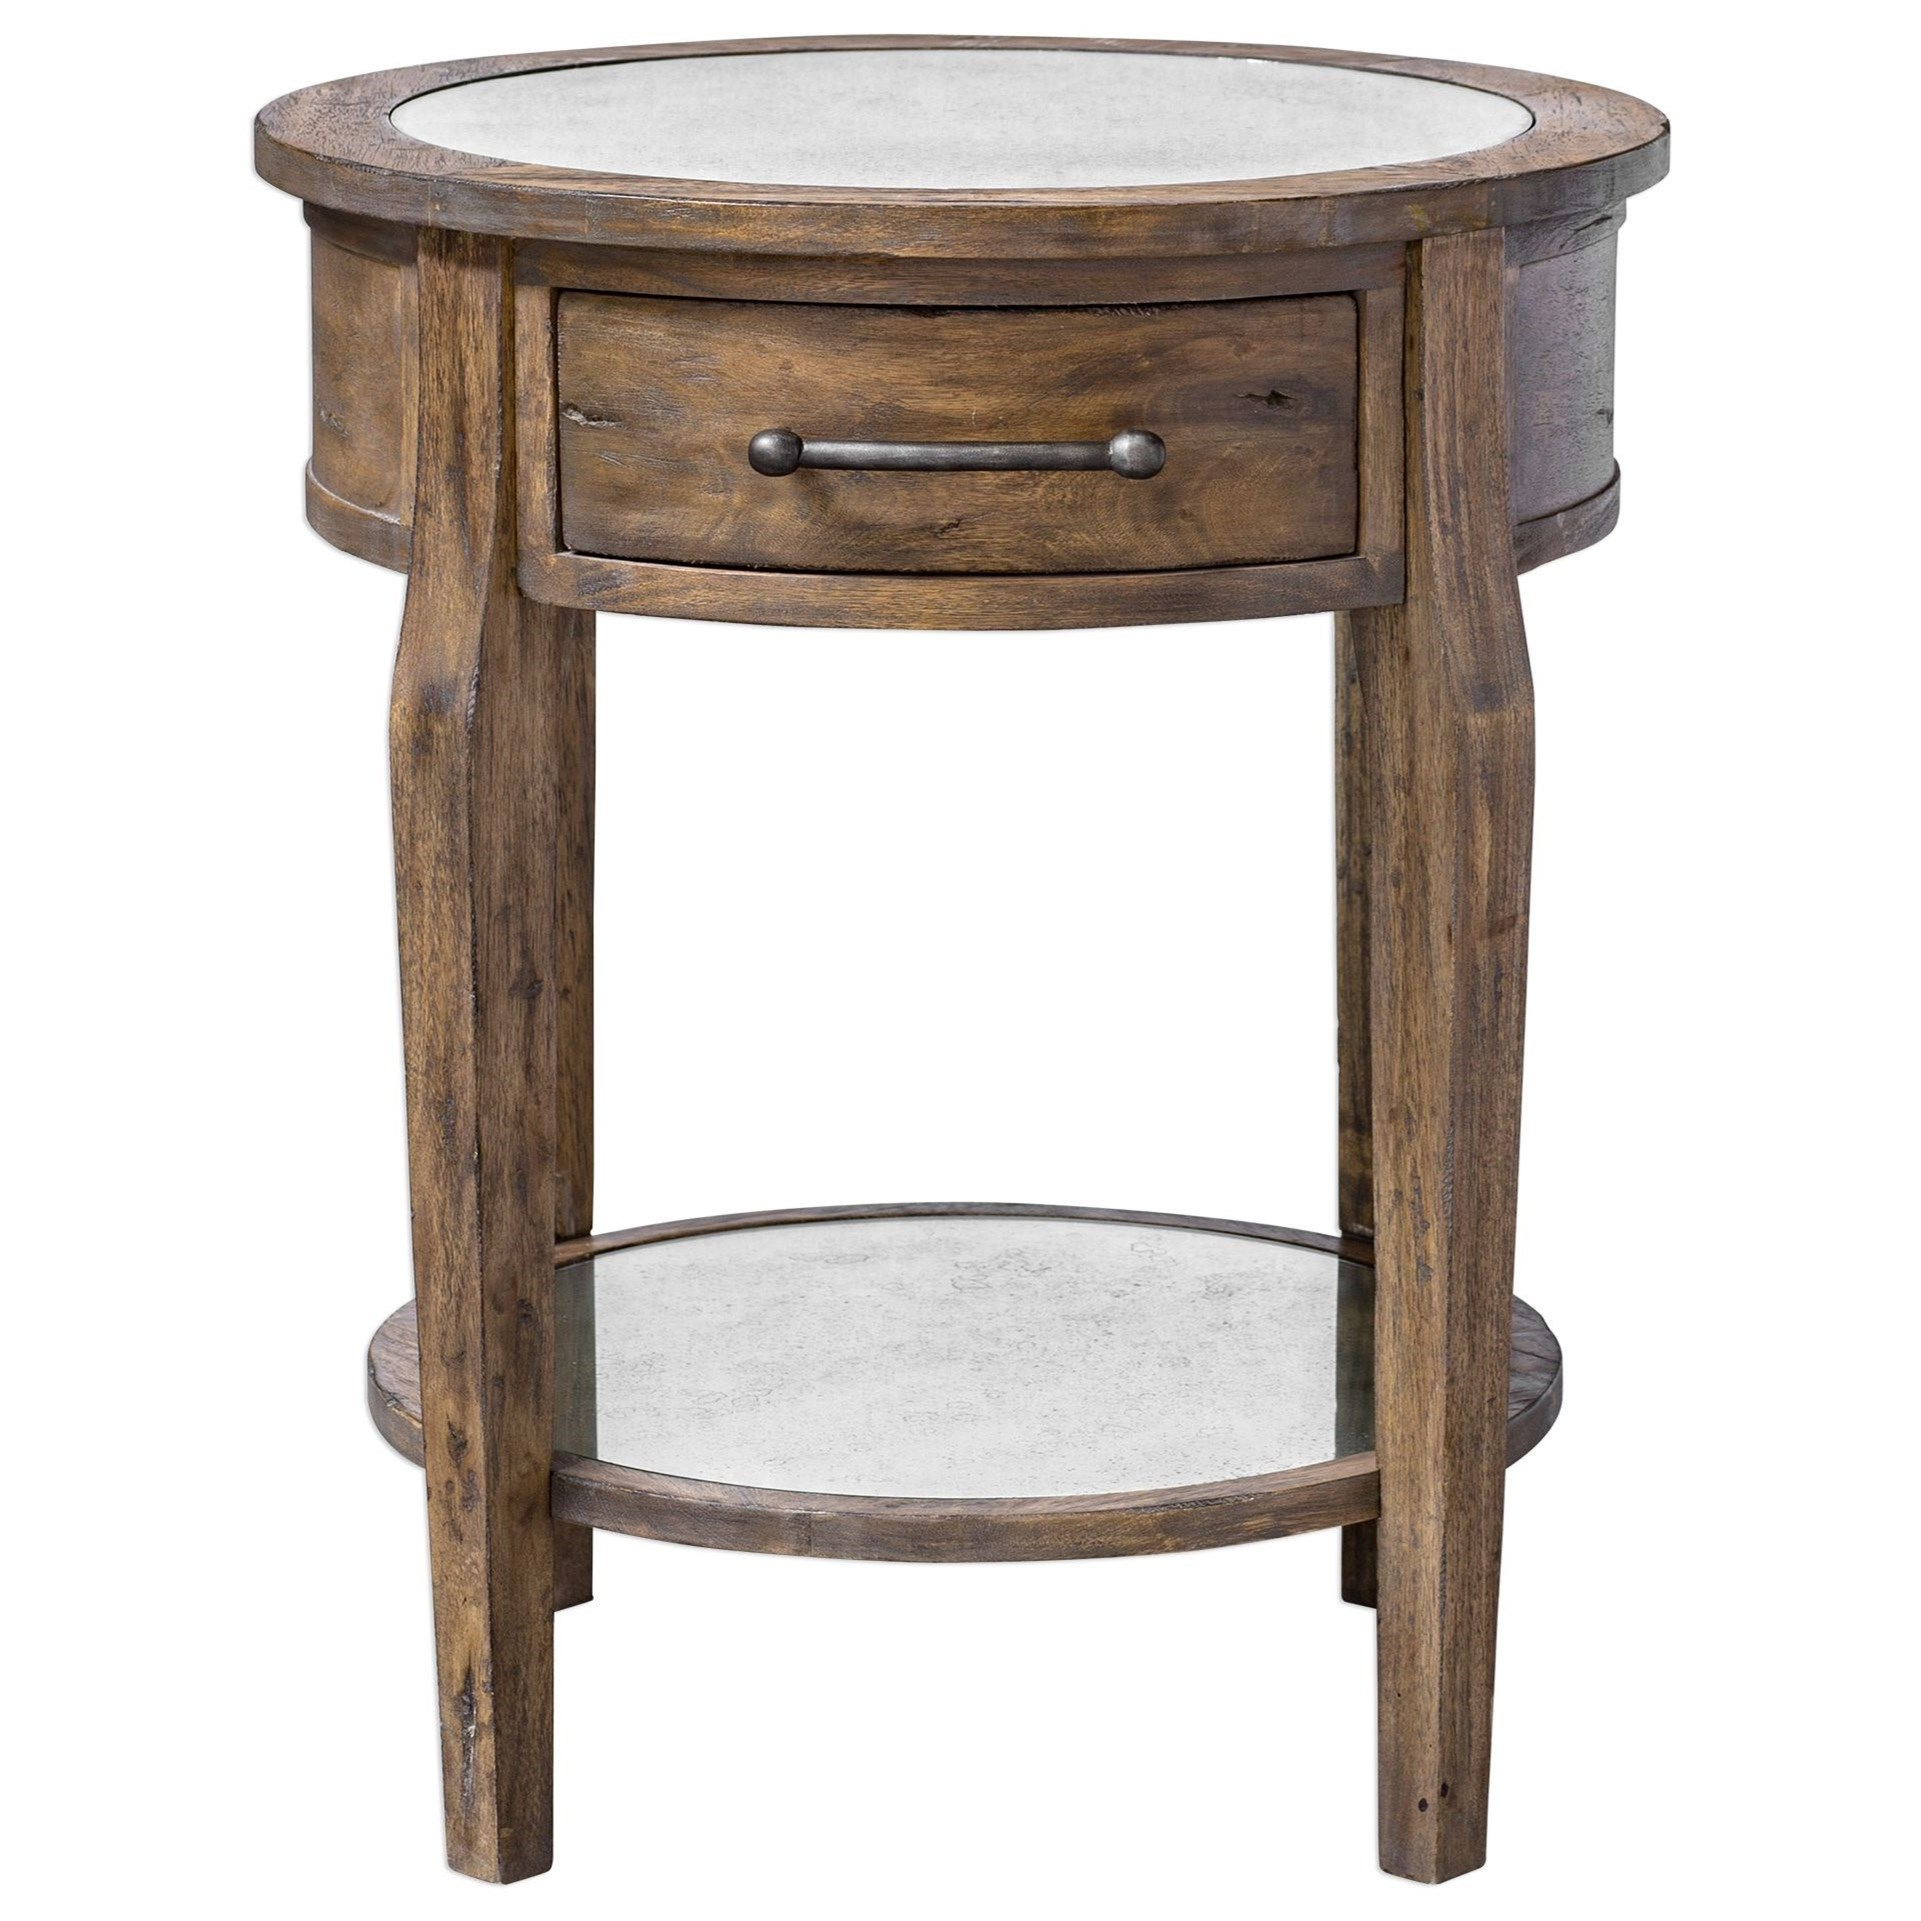 Accent Furniture - Occasional Tables Raelynn Wood Lamp Table by Uttermost at Factory Direct Furniture